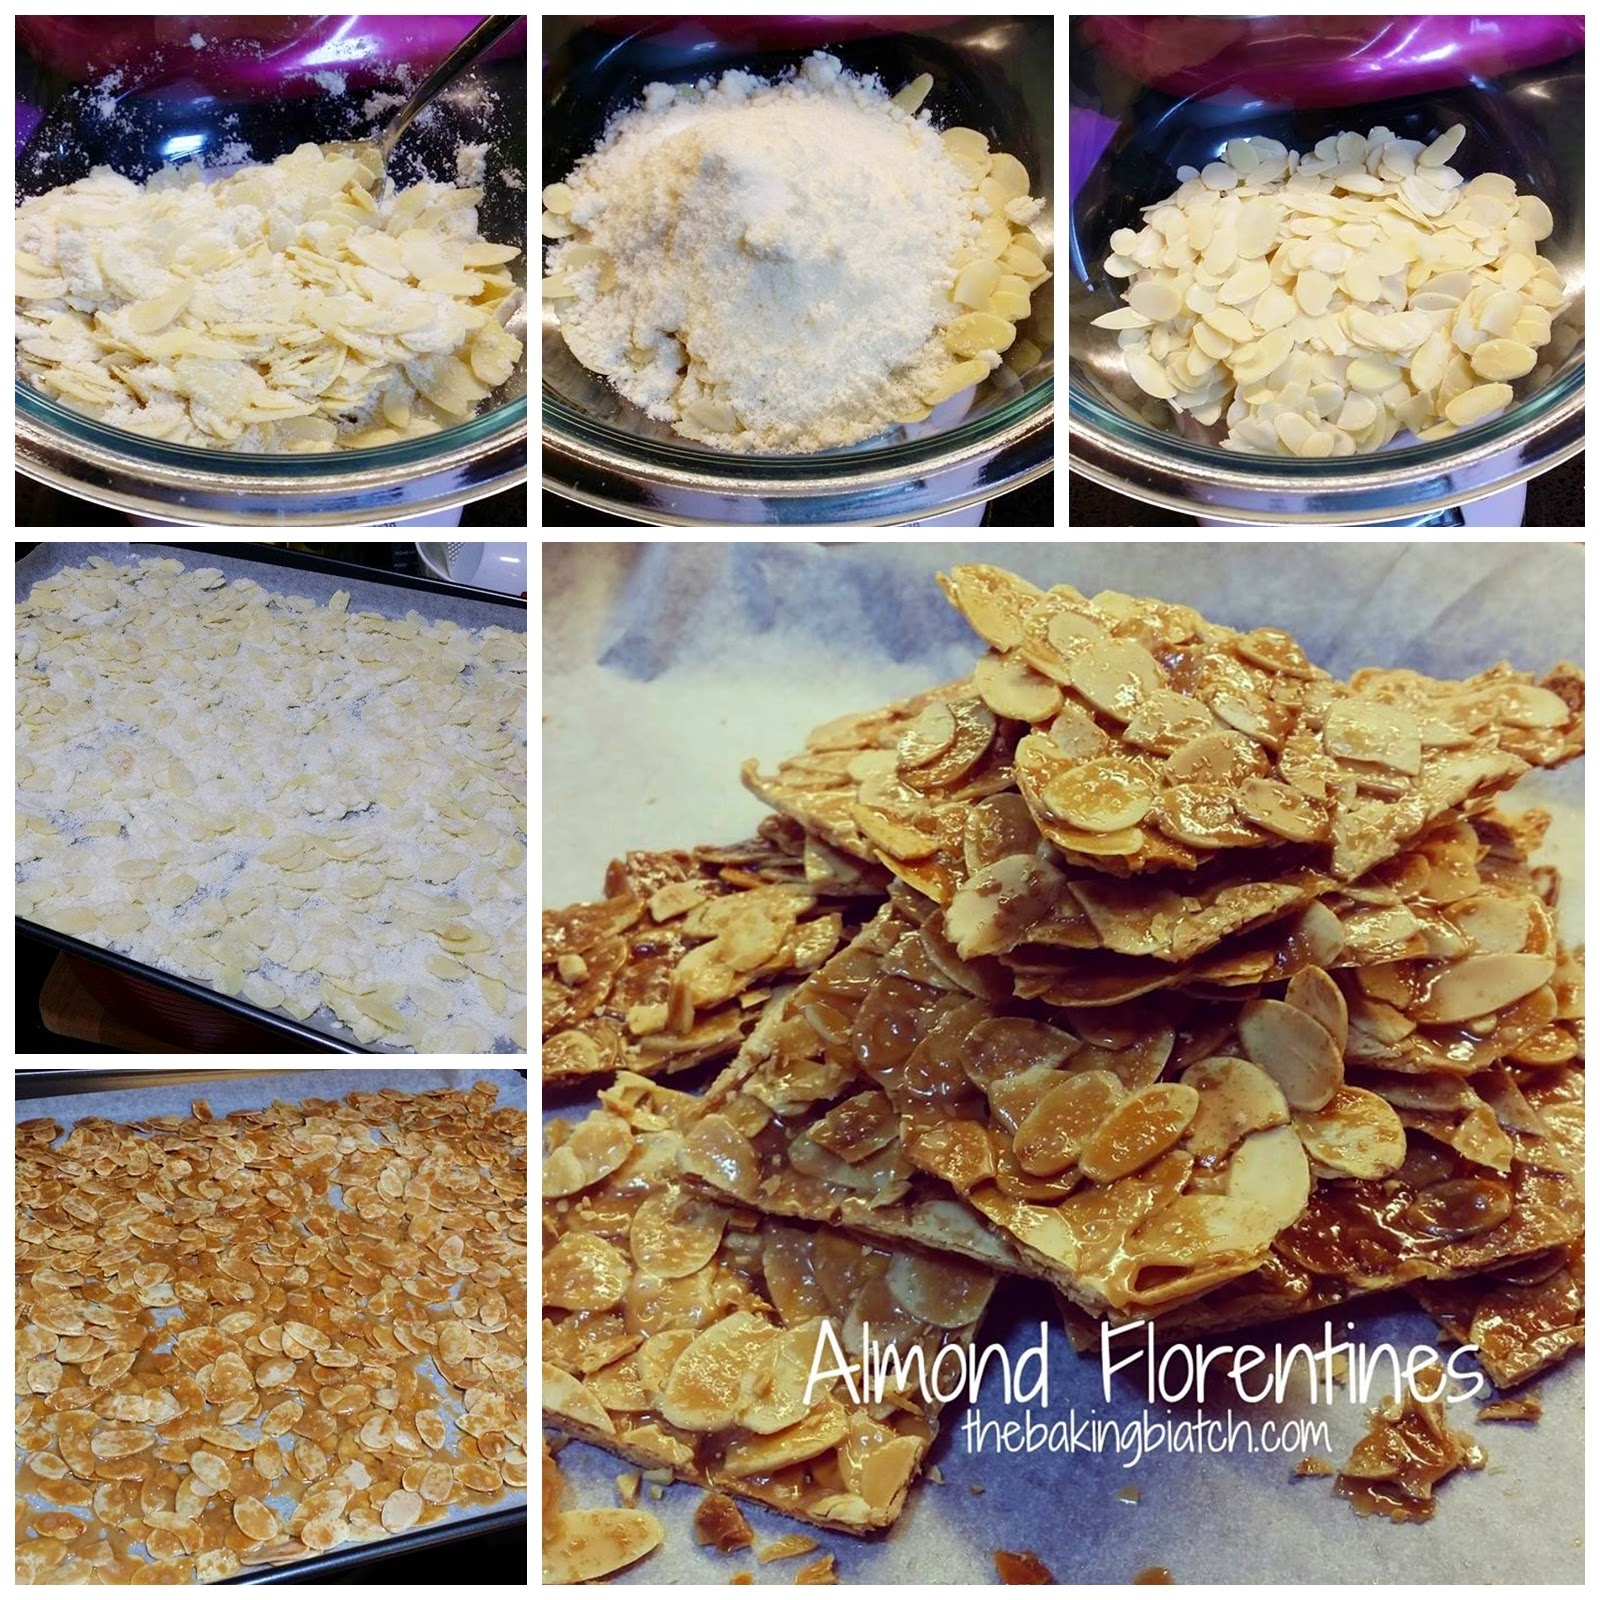 Easy almond florentines recipes